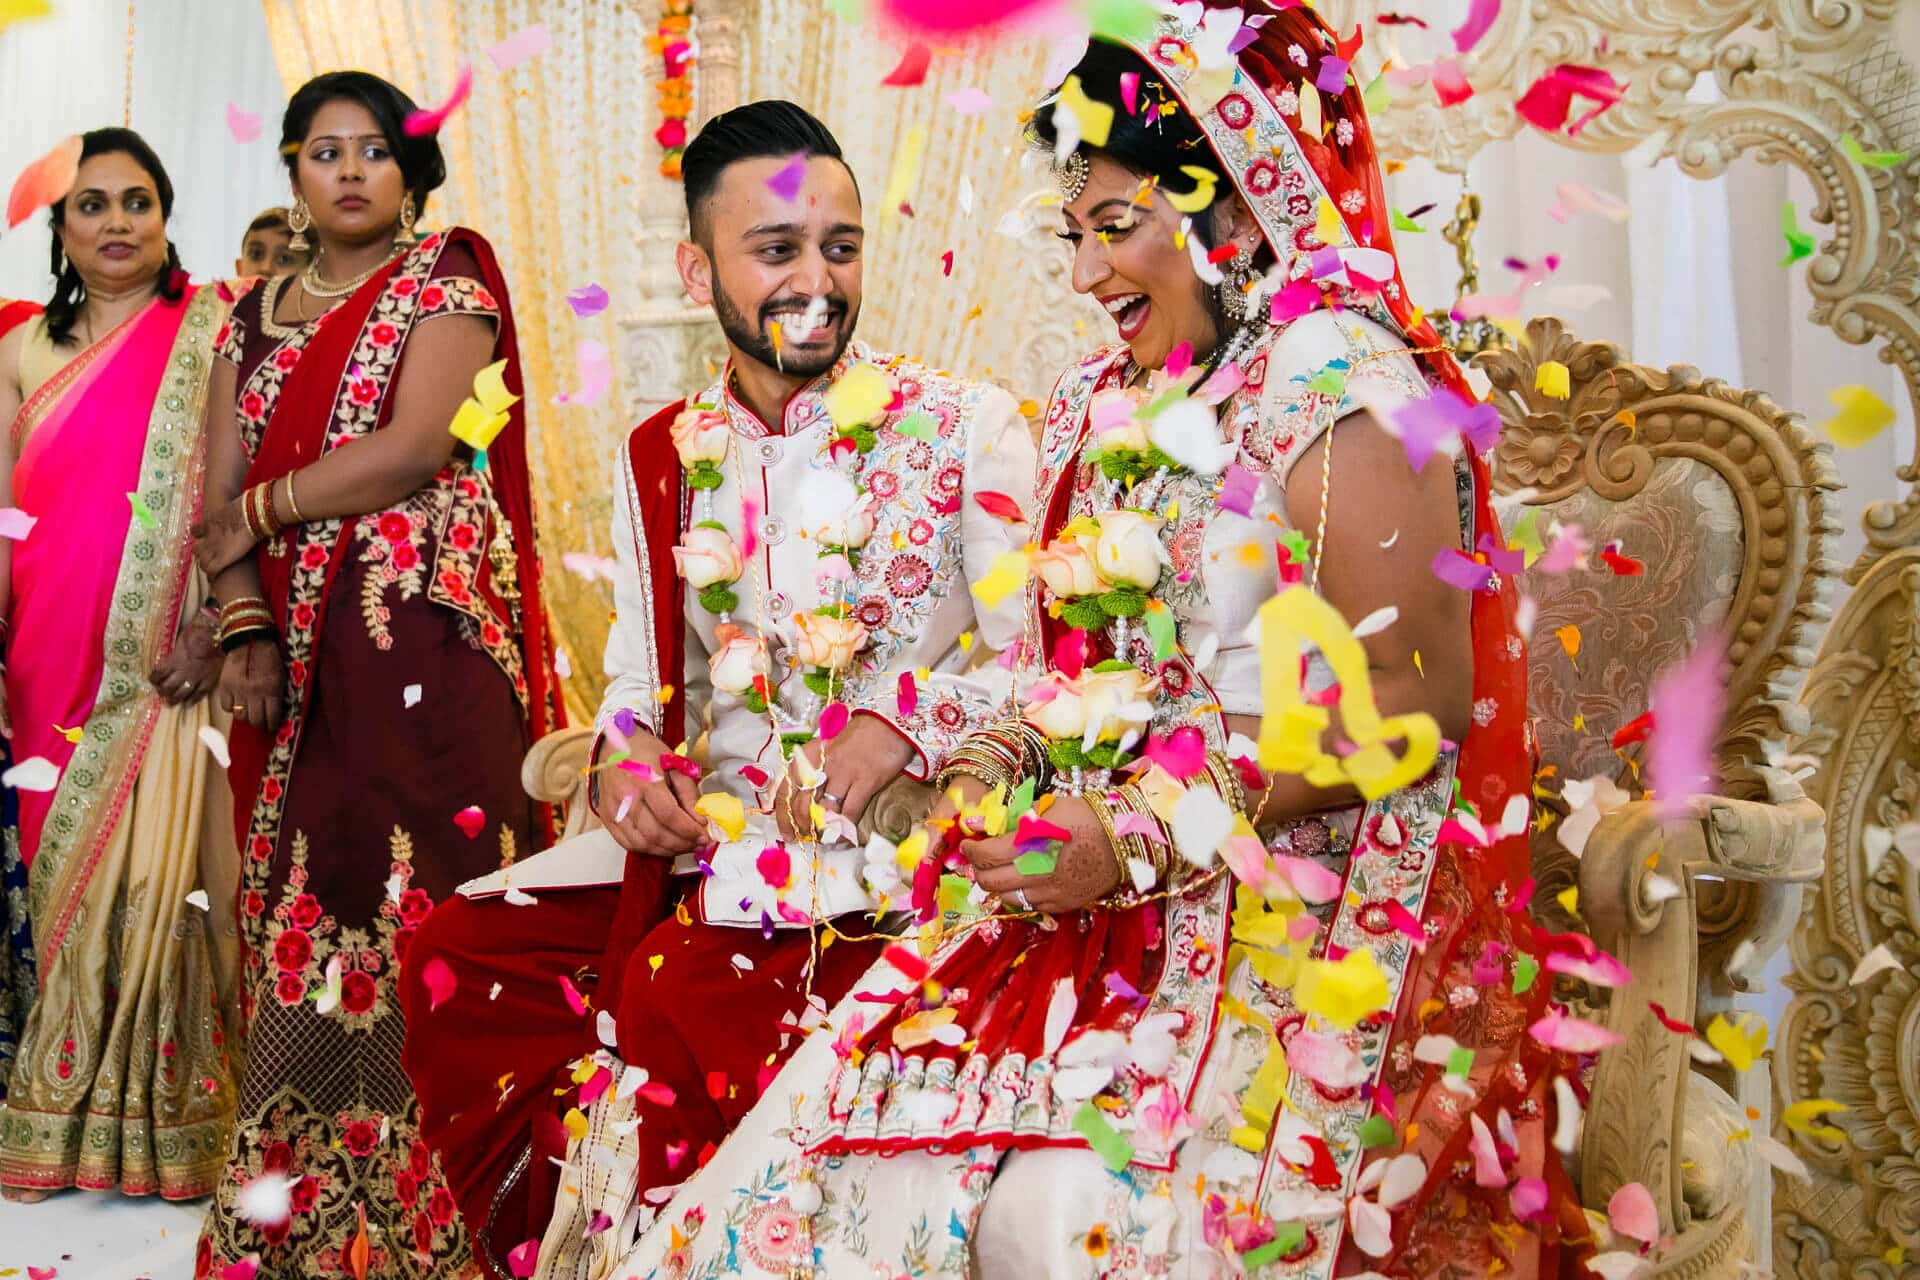 Confetti during Hindu wedding